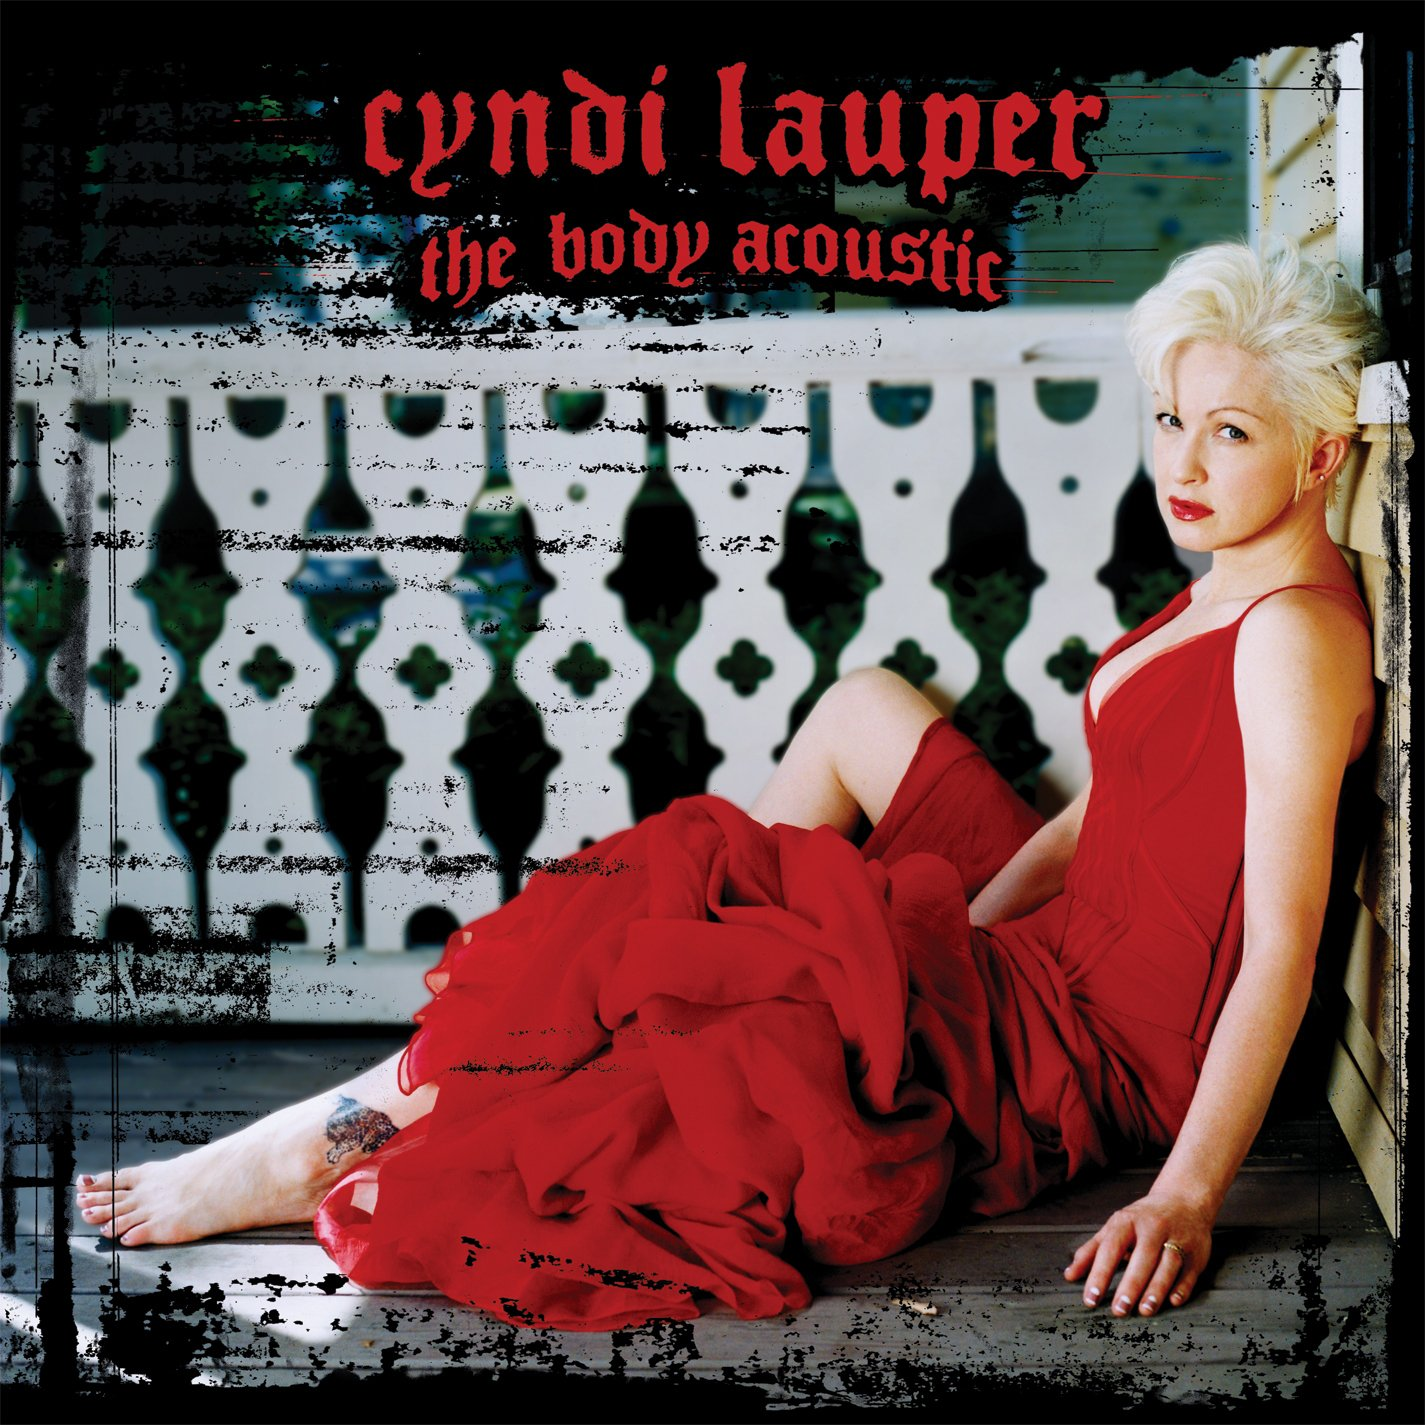 Cyndi Lauper, The Body Acoustic